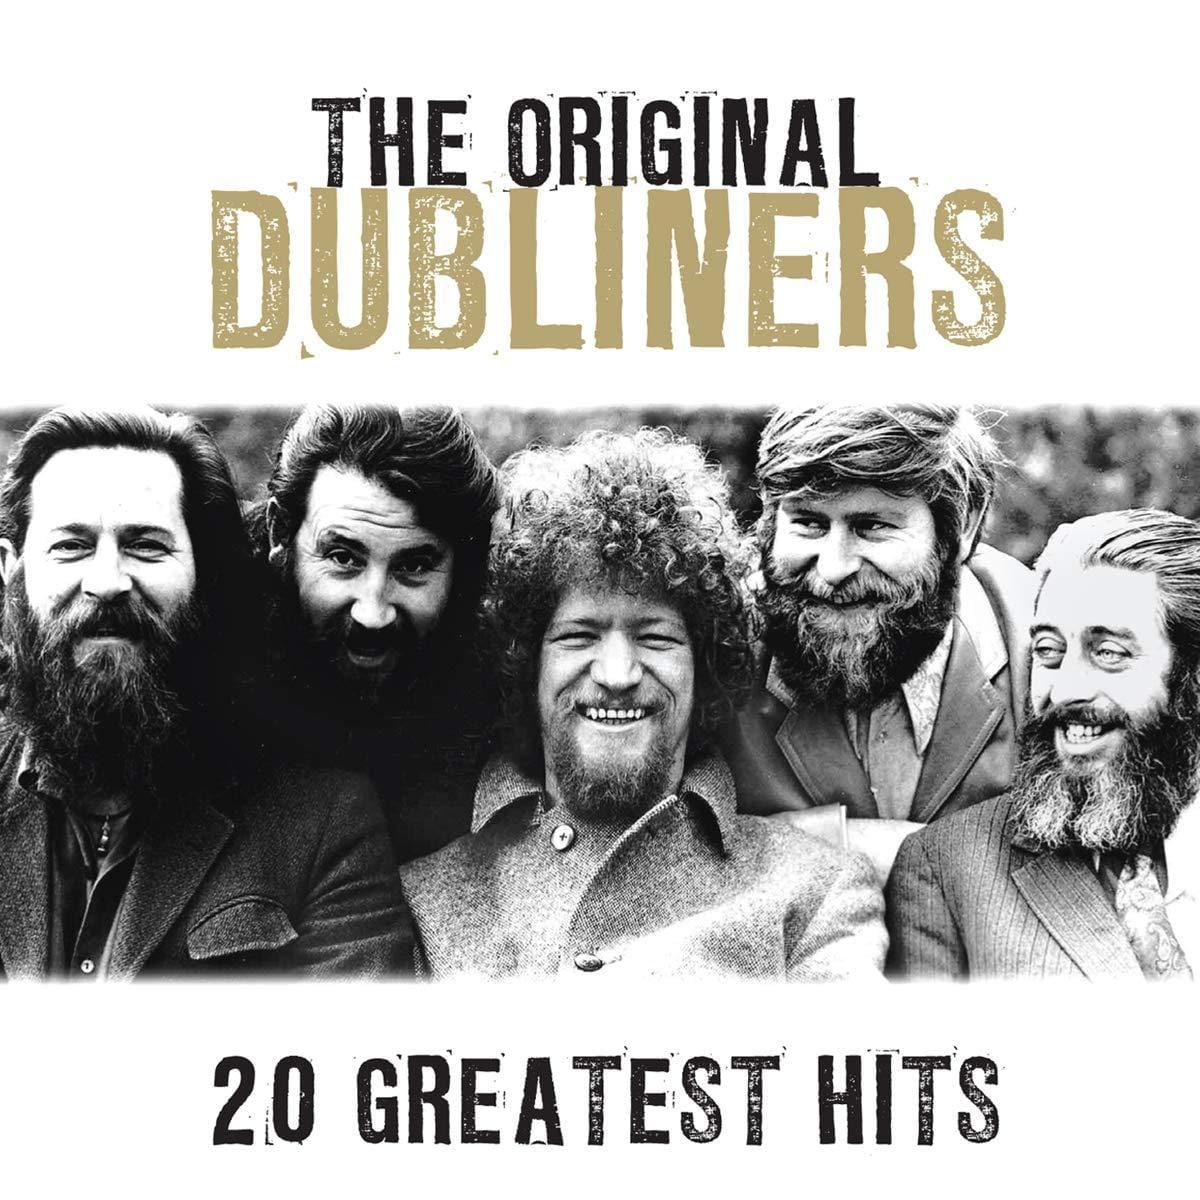 The Dubliners Original: 20 Greatest Hits [CD]